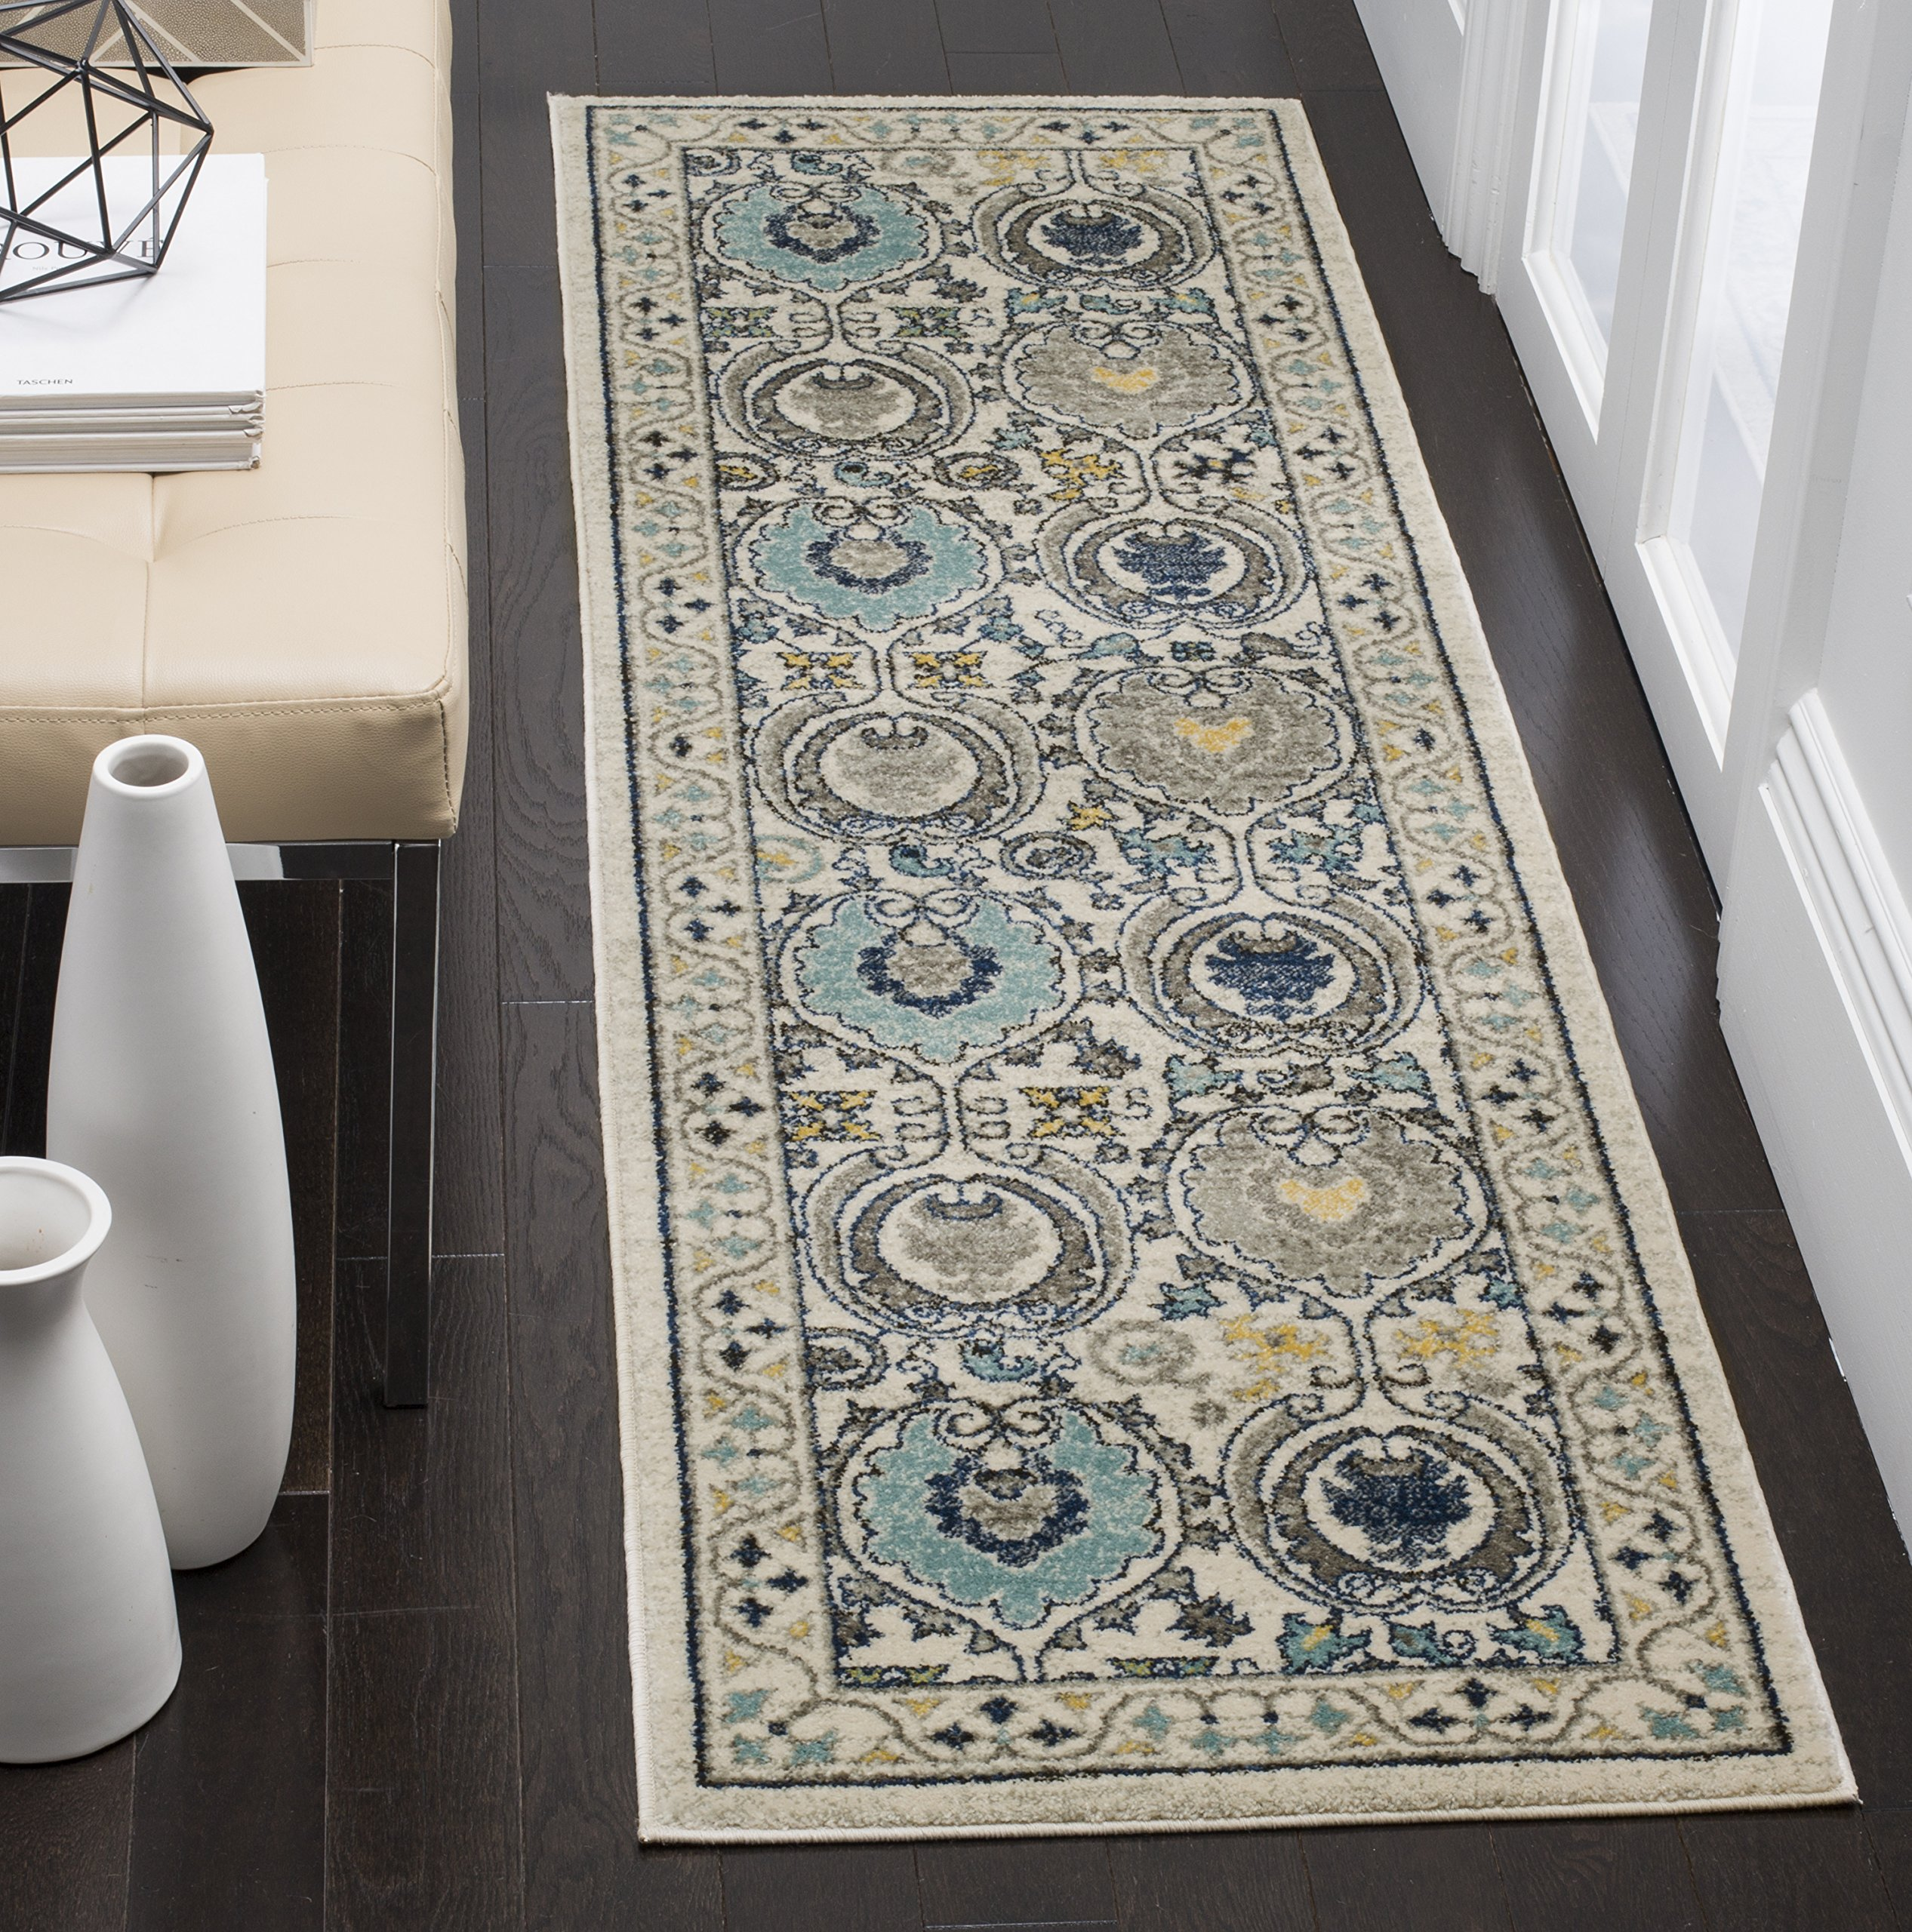 "Safavieh Evoke Collection EVK251D Contemporary Ivory and Grey Runner (2'2"" x 9') - The high-quality polypropylene and jute fibers add durability and longevity to these rugs The power loomed construction add durability to this rug, ensuring it will be a favorite for a long time The unmatched style of this rug's pattern will give your room a contemporary accent - runner-rugs, entryway-furniture-decor, entryway-laundry-room - A14%2Bm8uaIsL -"